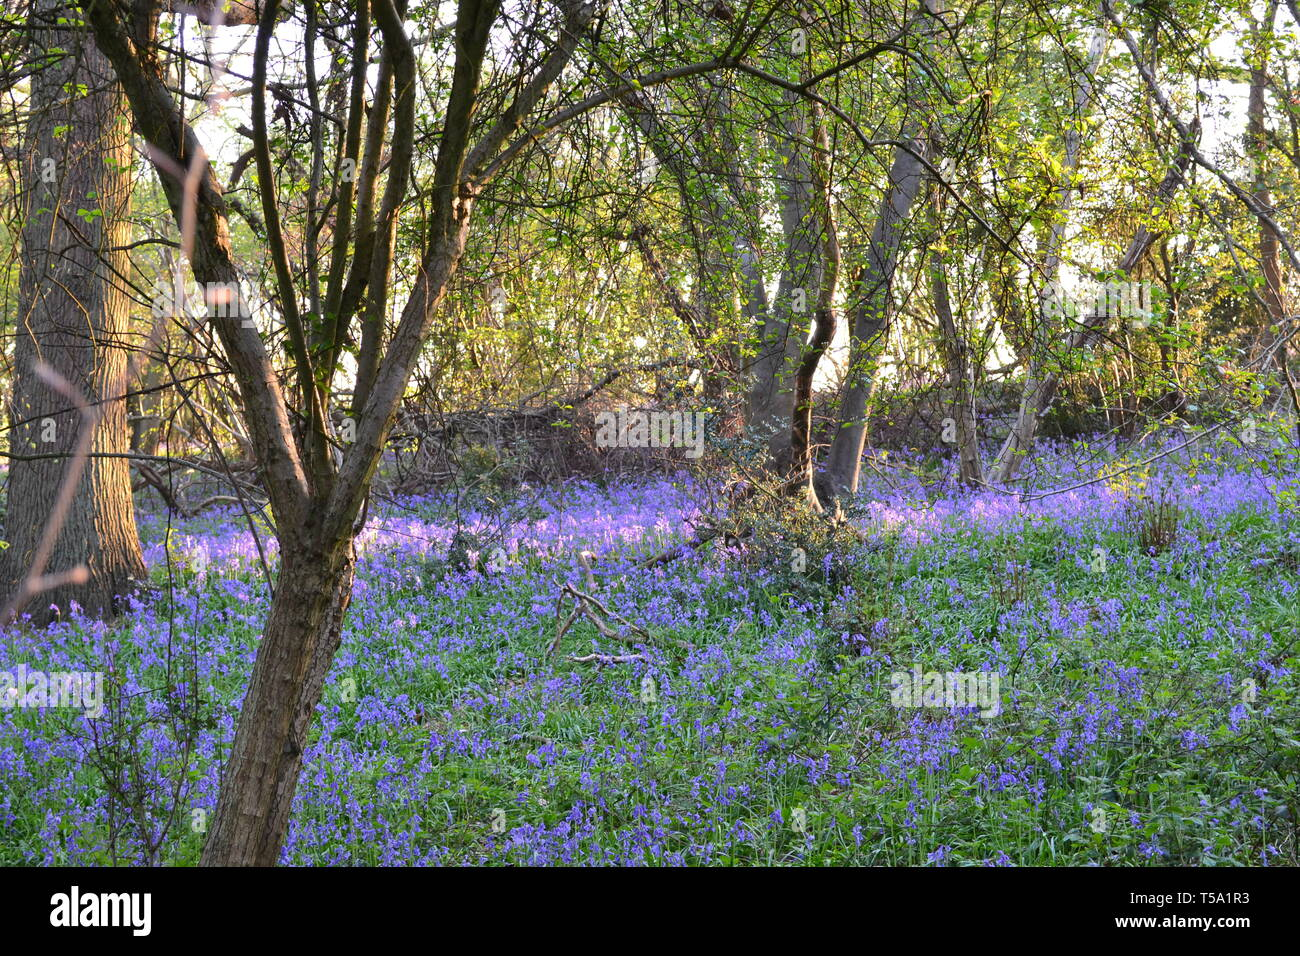 Bluebells on 21 April in Spring close to Downe Bank Kent Wildlife Trust area in late afternoon. Charles Darwin's House and Biggin Hill airport nearby - Stock Image